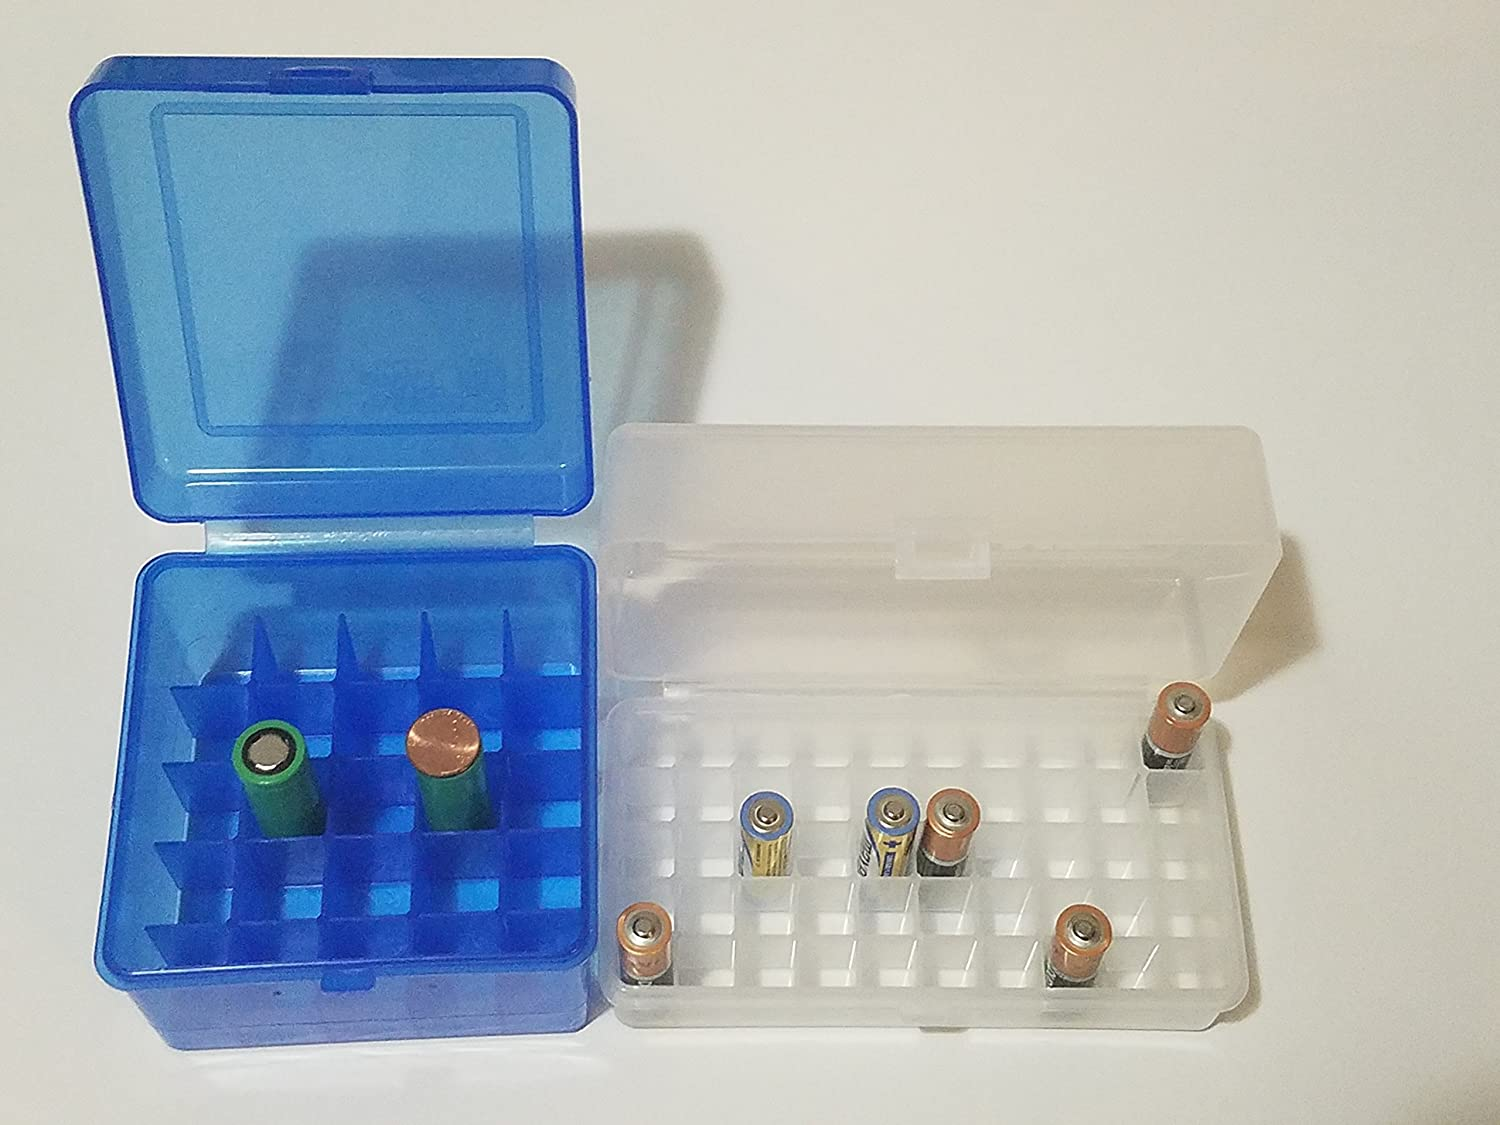 AA Clear Box for 50 Batteries /& 18650 Rechargeable Battery Plastic Storage Blue Box Container Holds 25 Batteries Holder Organizer Case Same Day Shipping